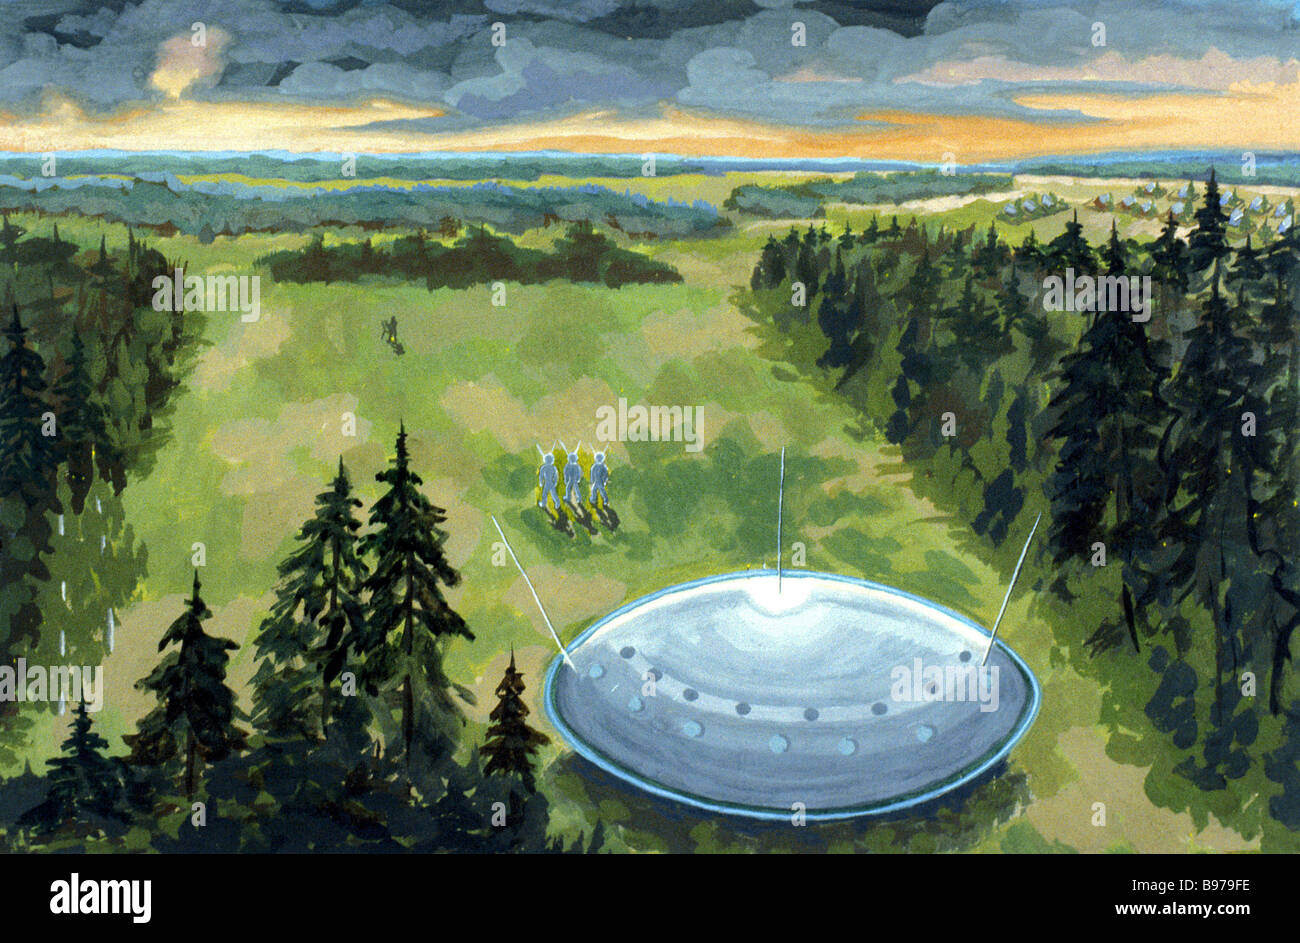 A picture of a UFO painted by artist Malyshev after a close encounter near Moscow in the summer of 1975 - Stock Image